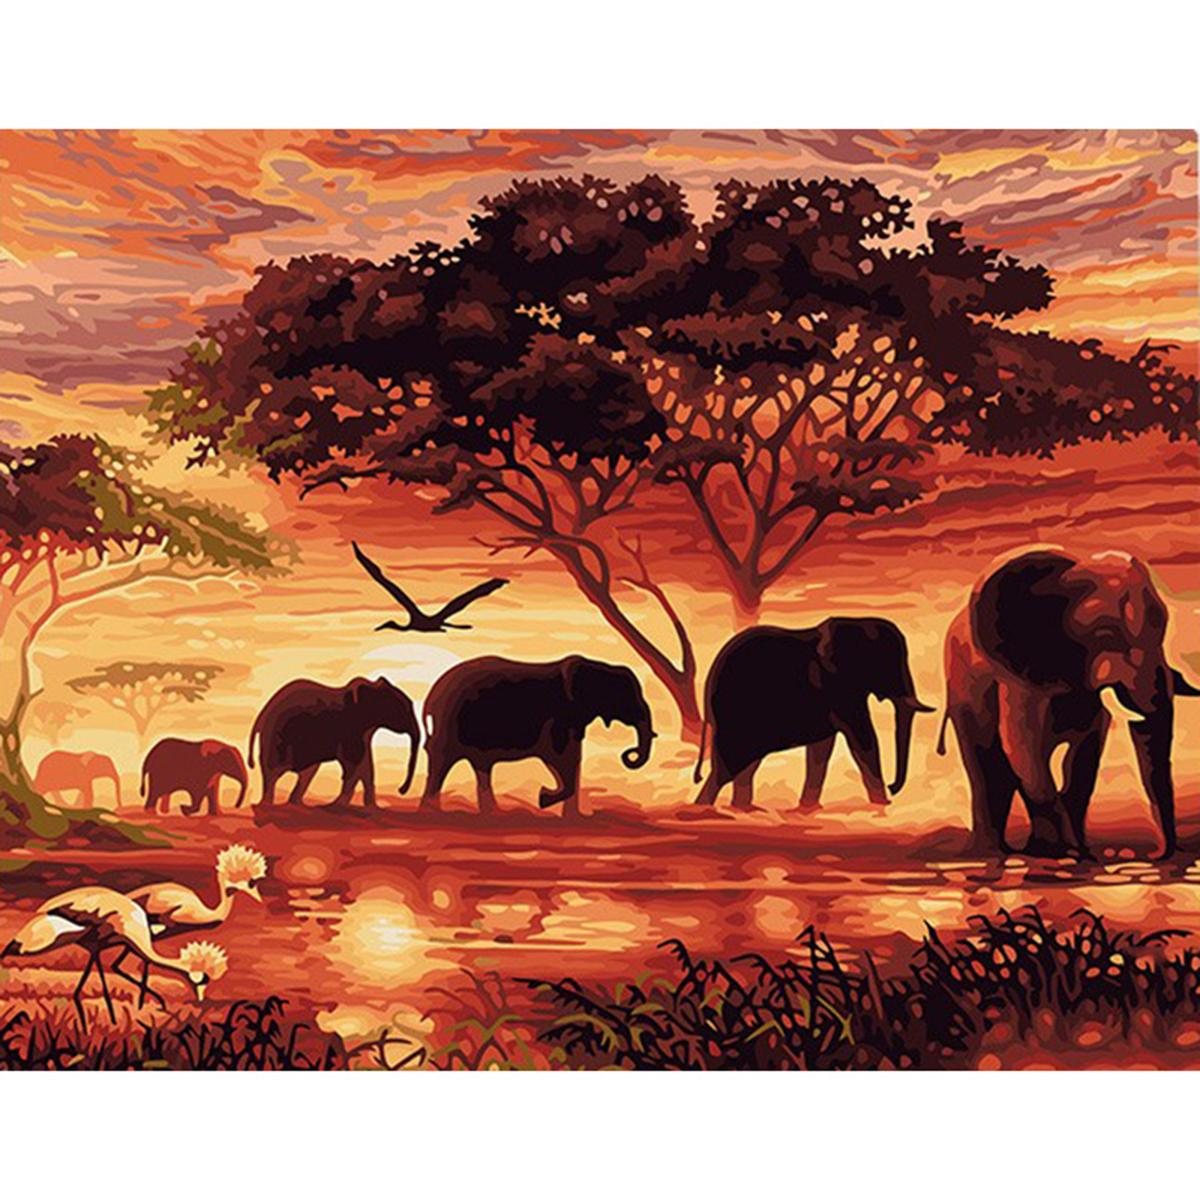 GX5189 40 X 50cm Framless Animals Picture Painting By Numbers DIY Coloring Wall Art